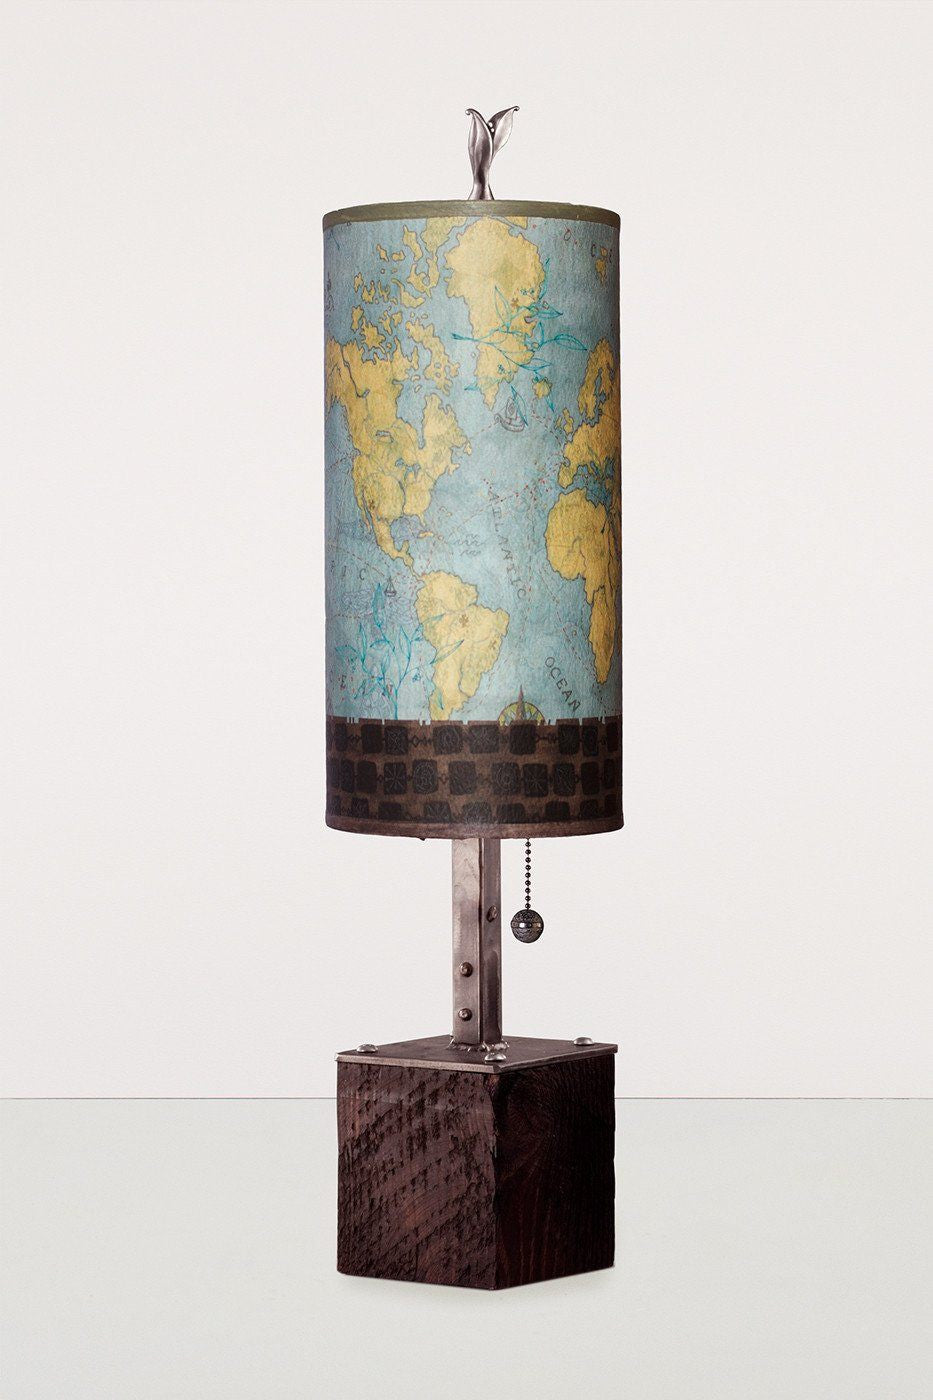 Steel Table Lamp on Reclaimed Wood with Small Tube Shade in Map